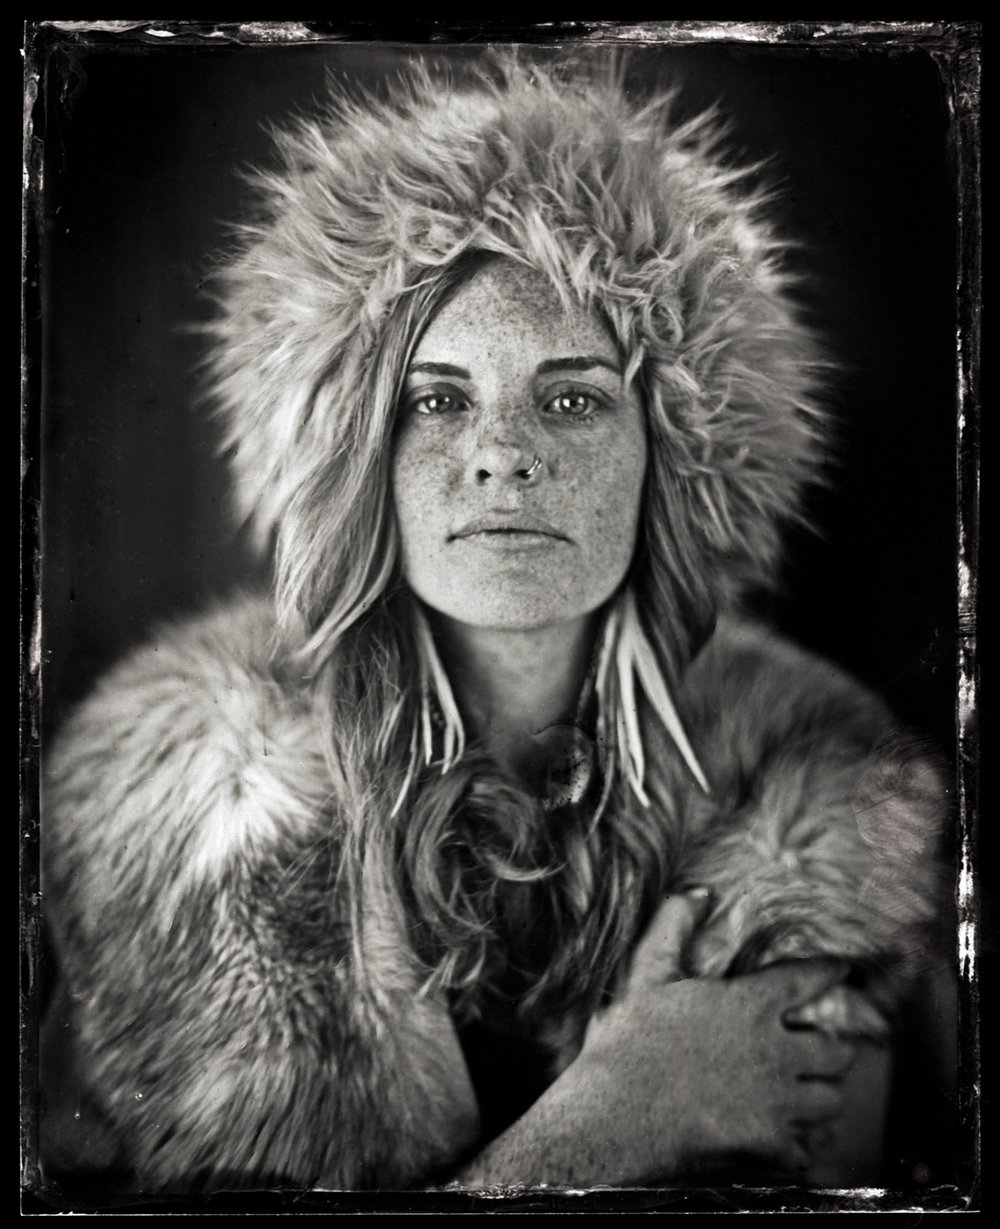 Title : Kenzie. Ice Queen.  By:  Jason Chinchen  https://www.instagram.com/analogue_tintypes/